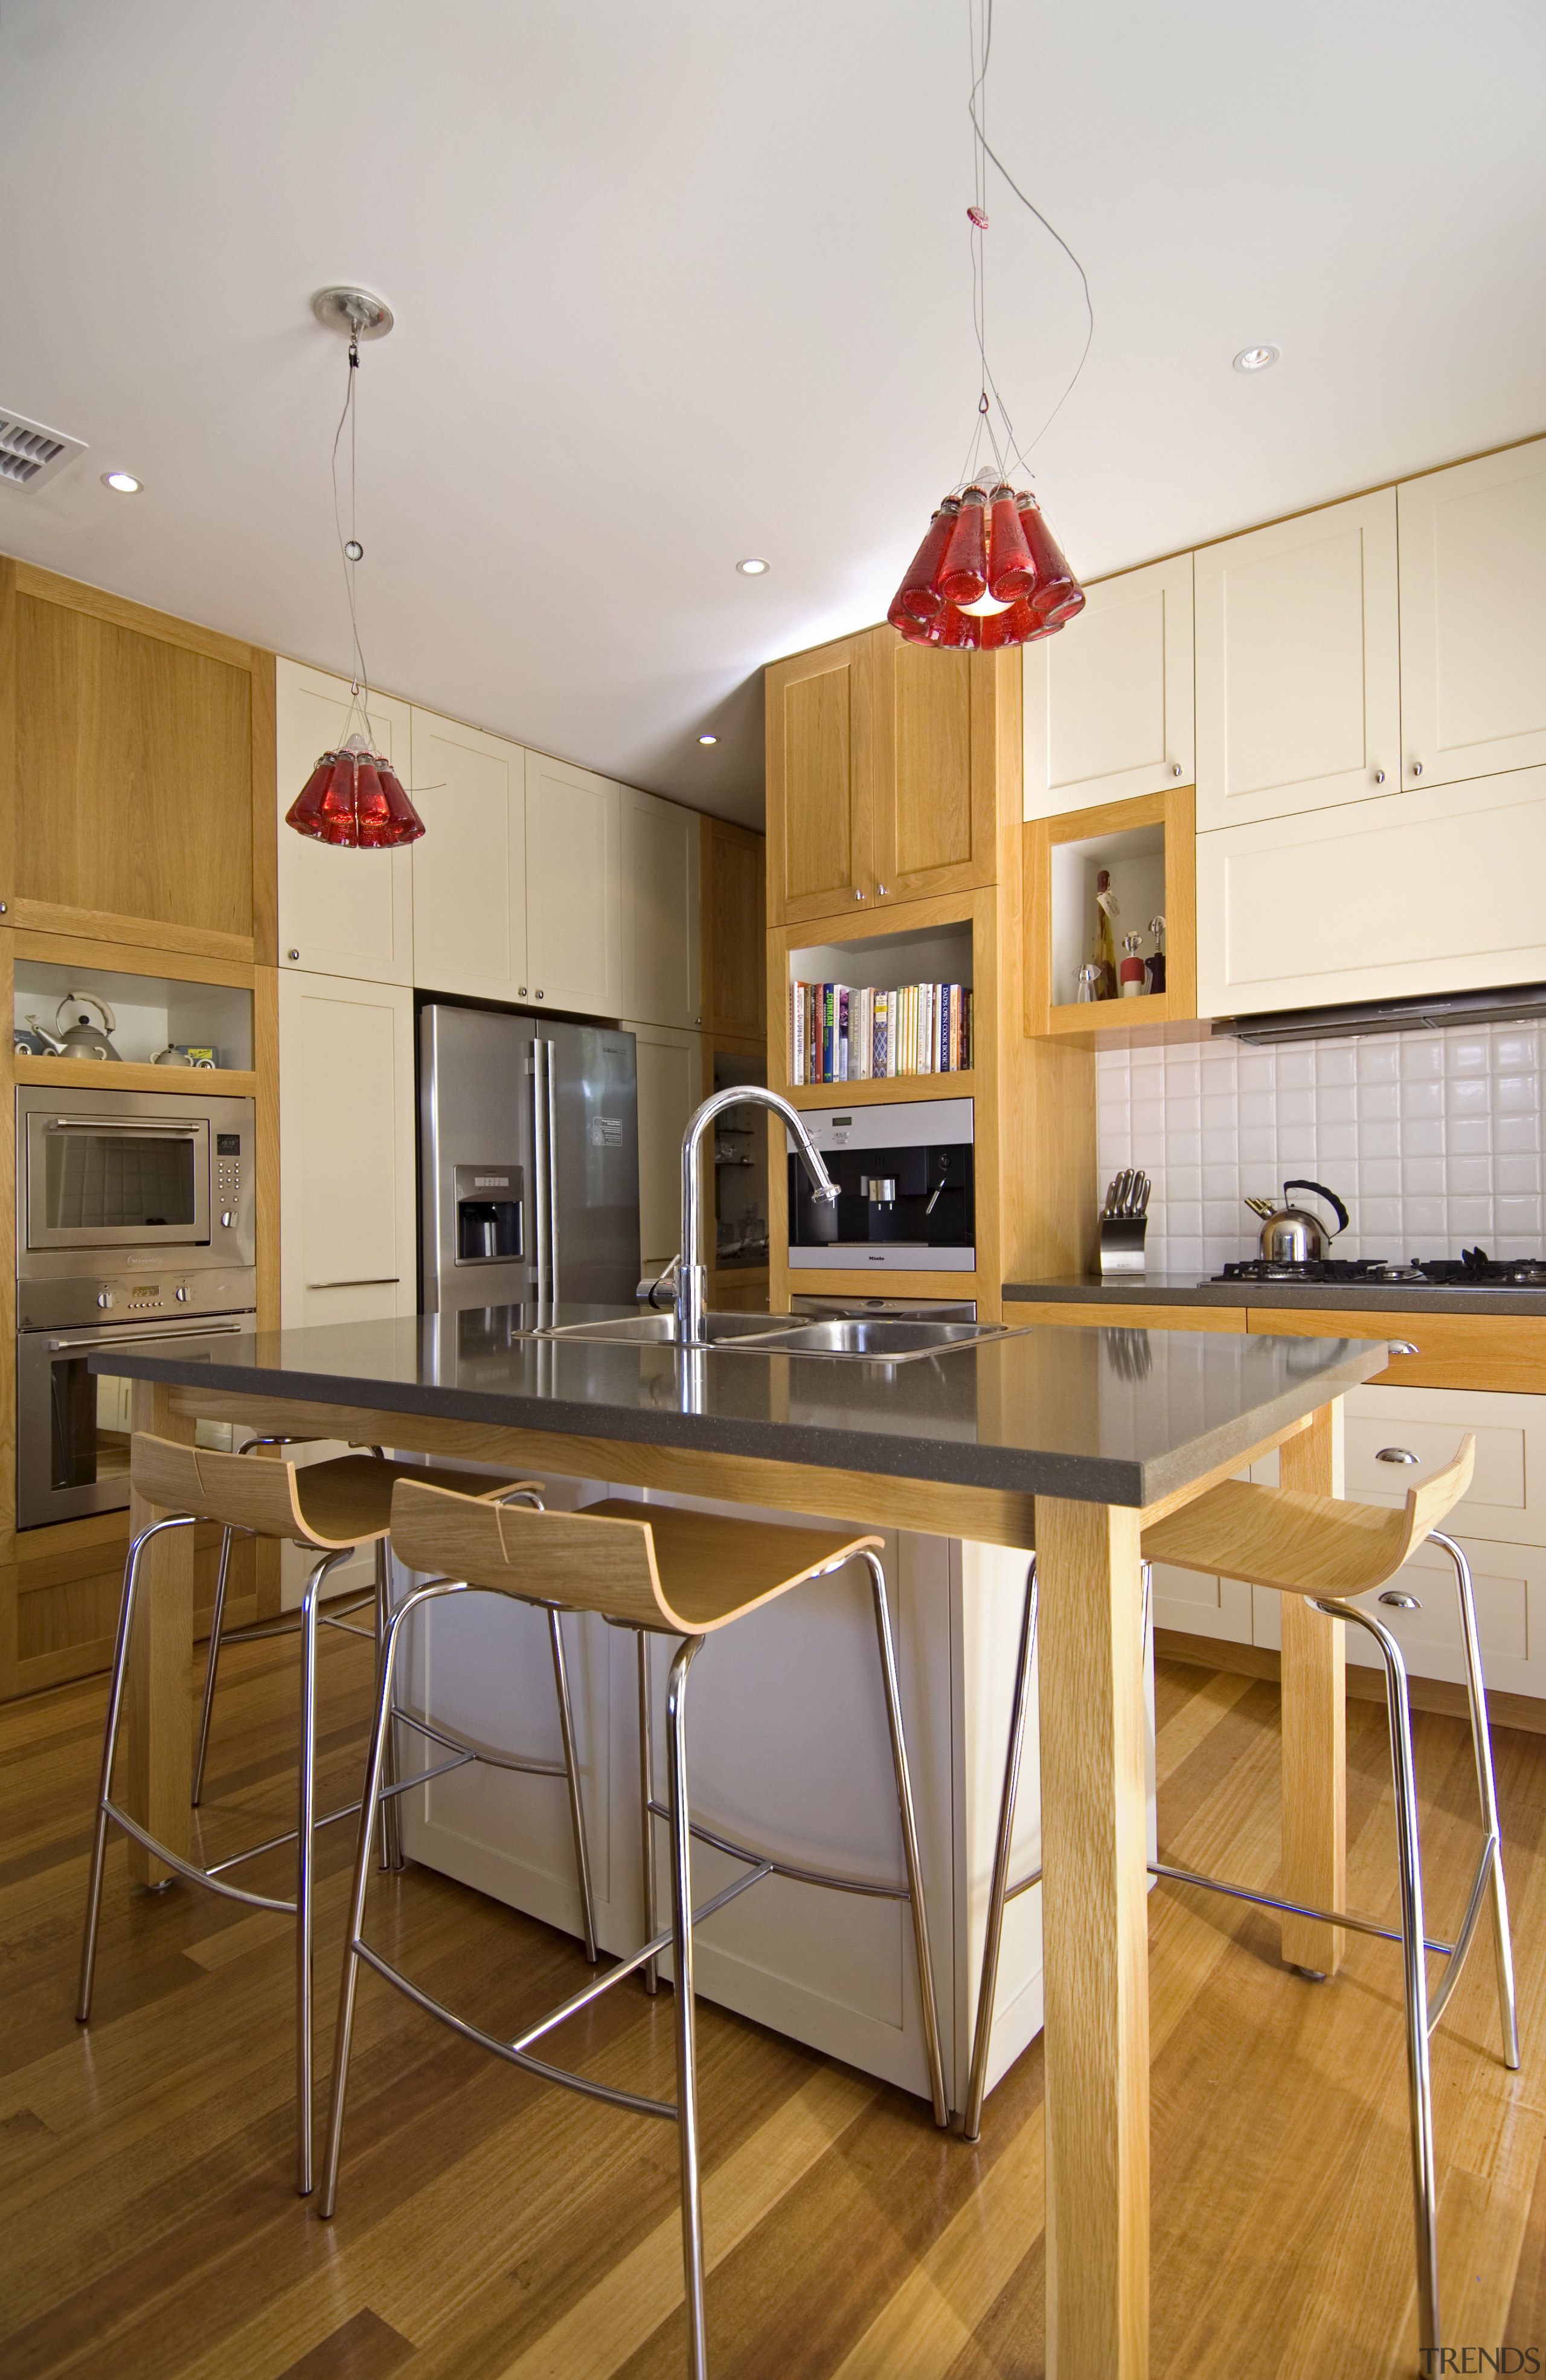 View of a renovated kitchen which has had countertop, floor, furniture, interior design, kitchen, real estate, room, table, white, brown